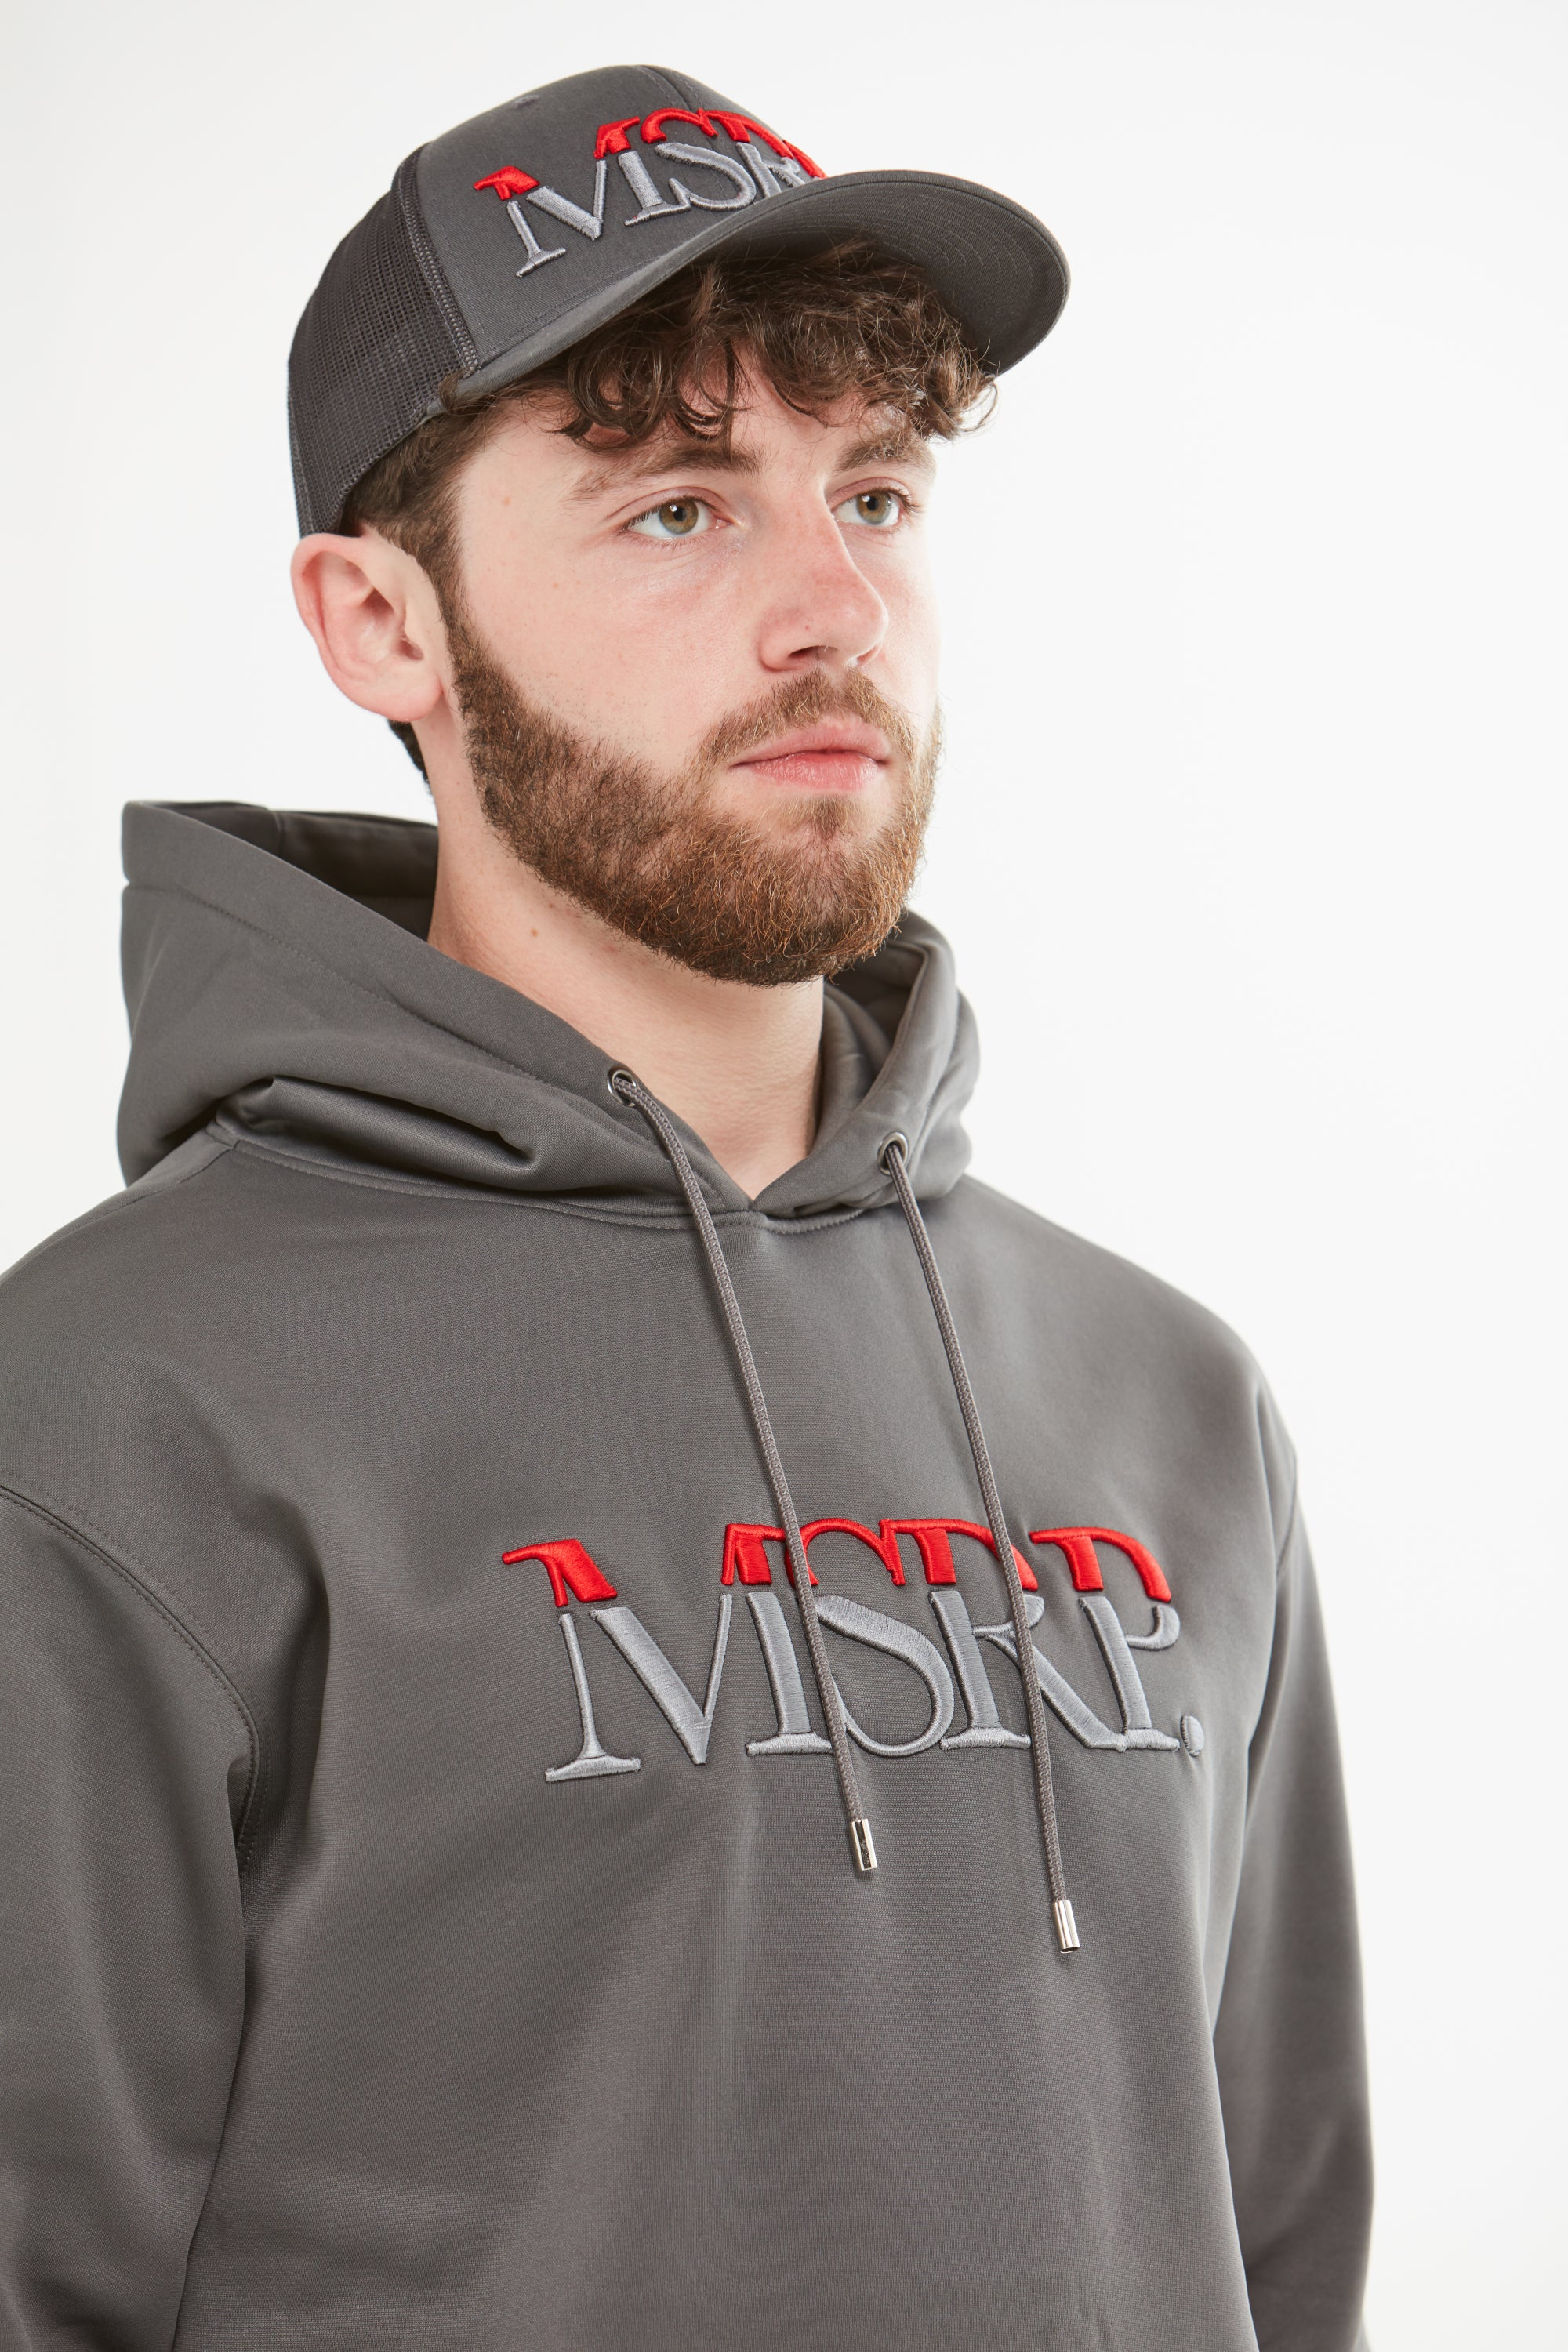 MSRP Embroidered Hoodie (Red/Grey) (Slate Grey) (Soft Shell)